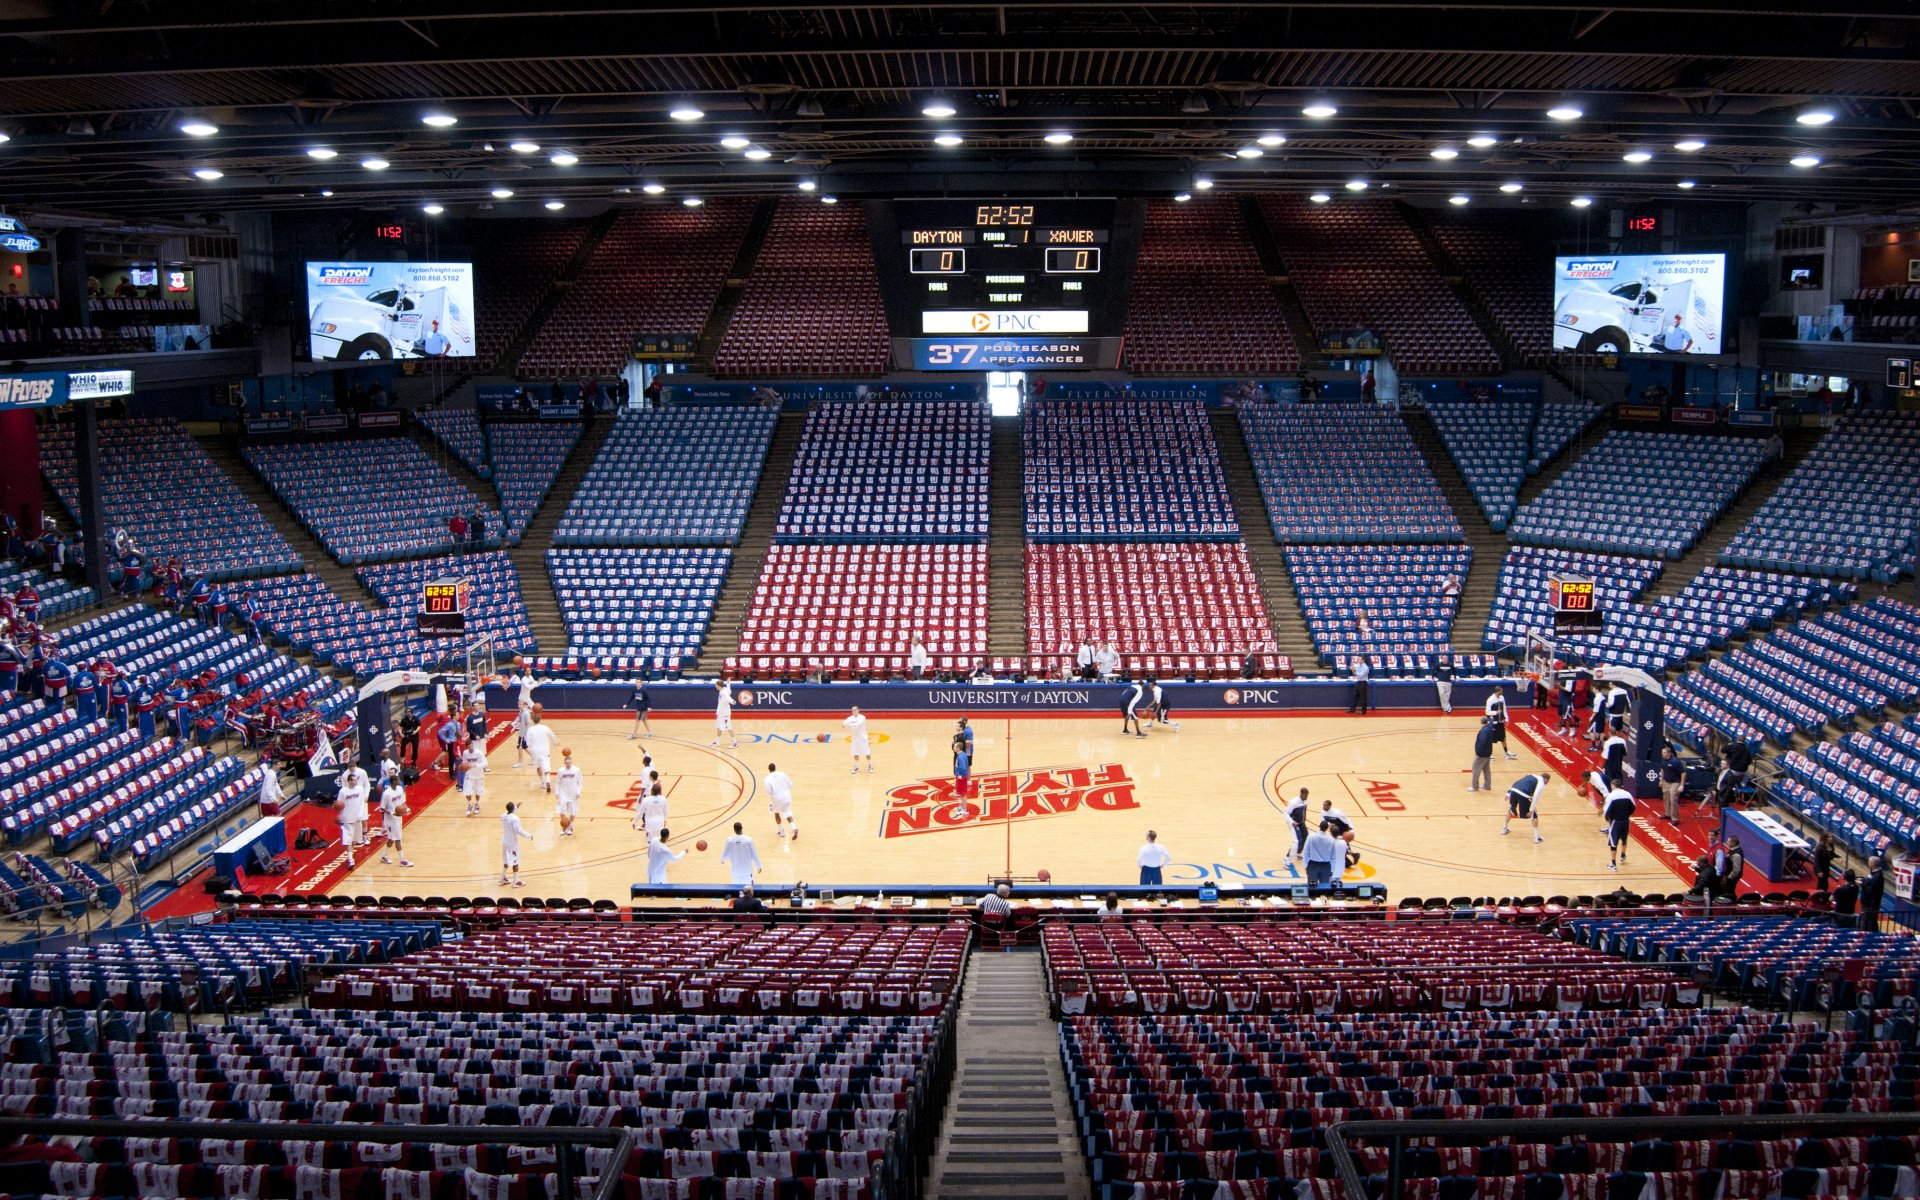 Atlantic 10 Conference College Basketball Arena Wallpapers